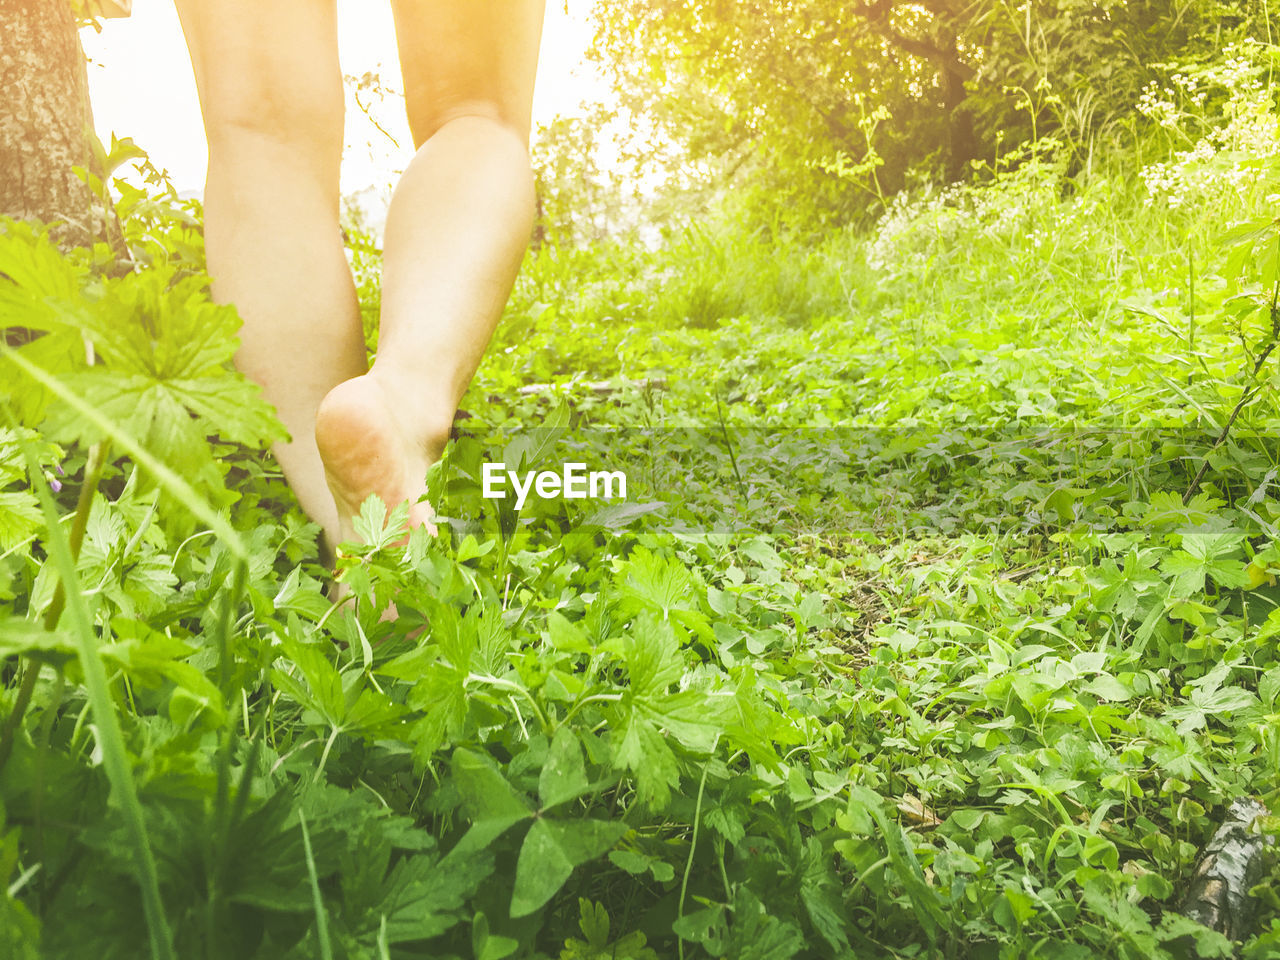 plant, one person, human body part, low section, body part, green color, growth, human leg, nature, land, leisure activity, lifestyles, day, real people, barefoot, adult, women, grass, unrecognizable person, outdoors, human foot, human limb